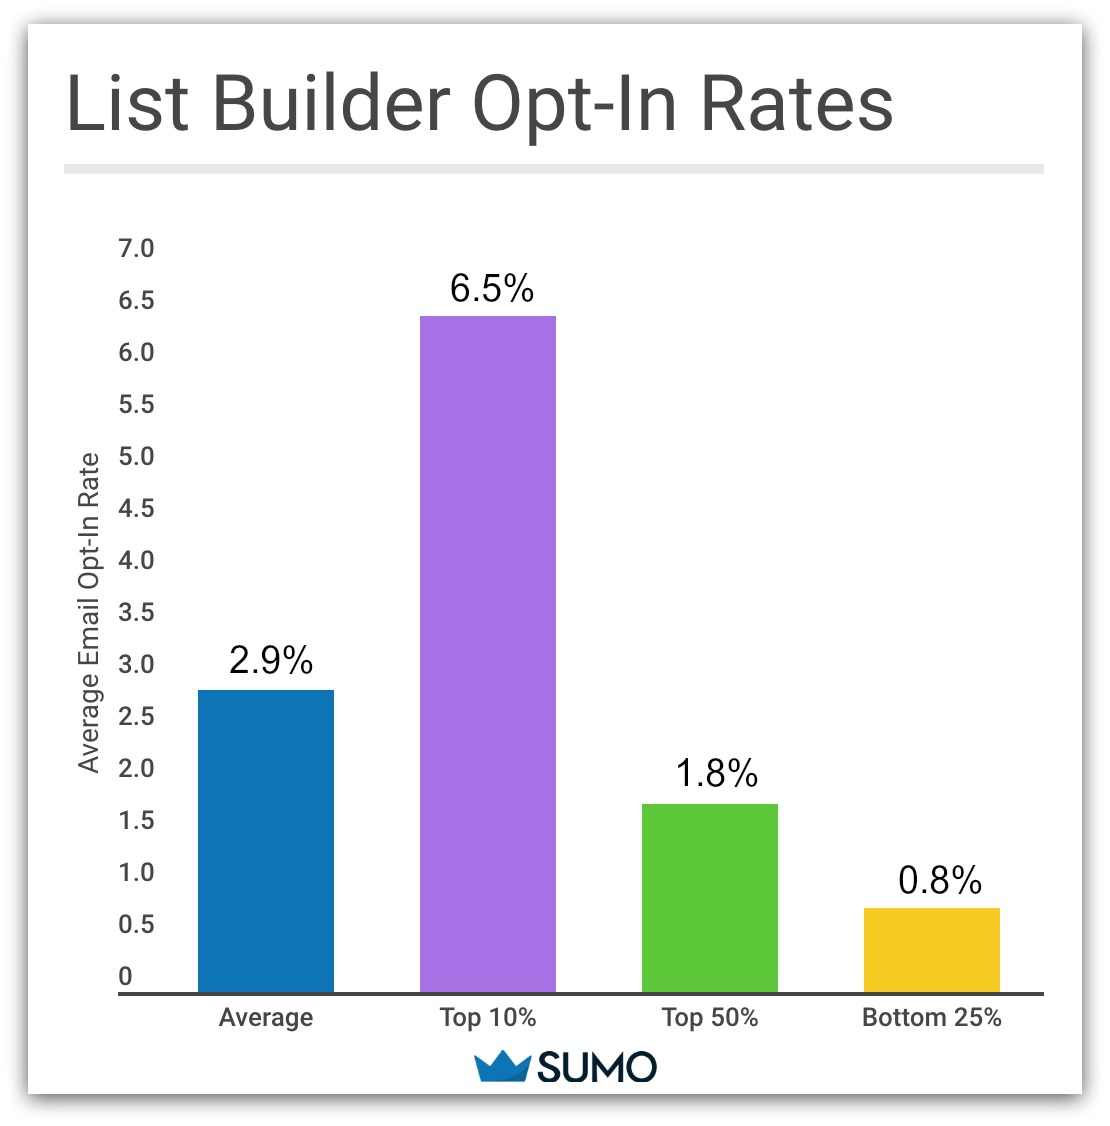 A graph showing the average opt-in rates for list builder